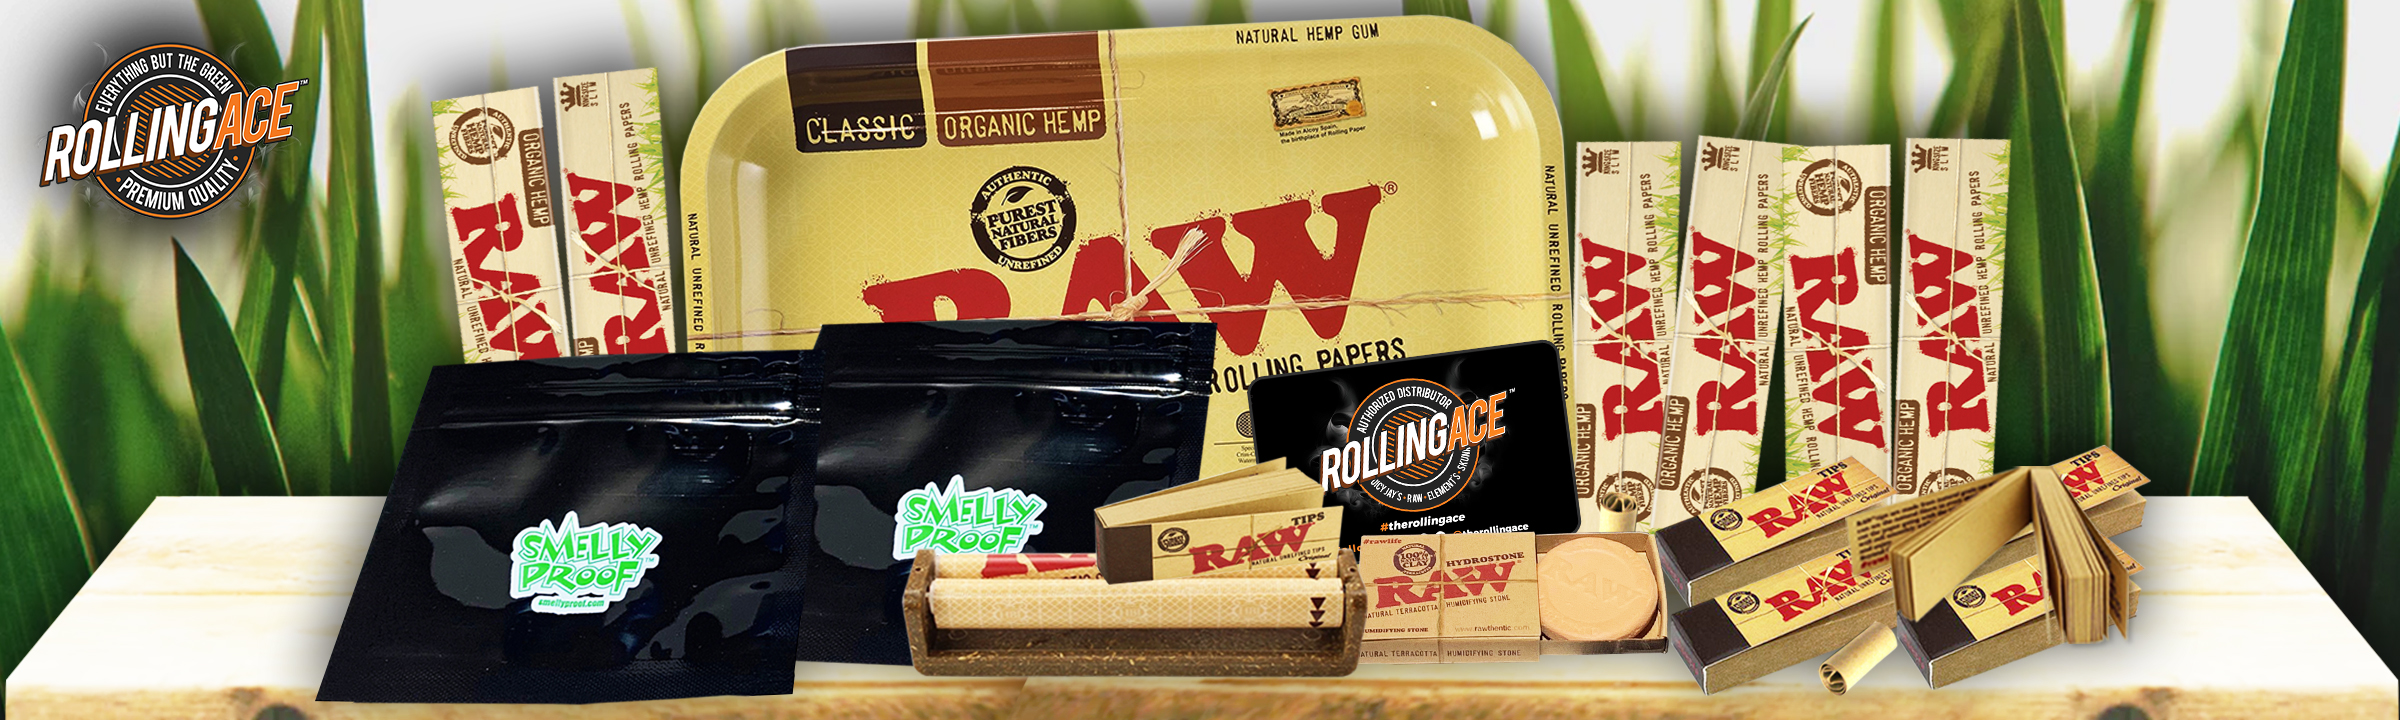 Raw King Size Organic Bundle with Tray